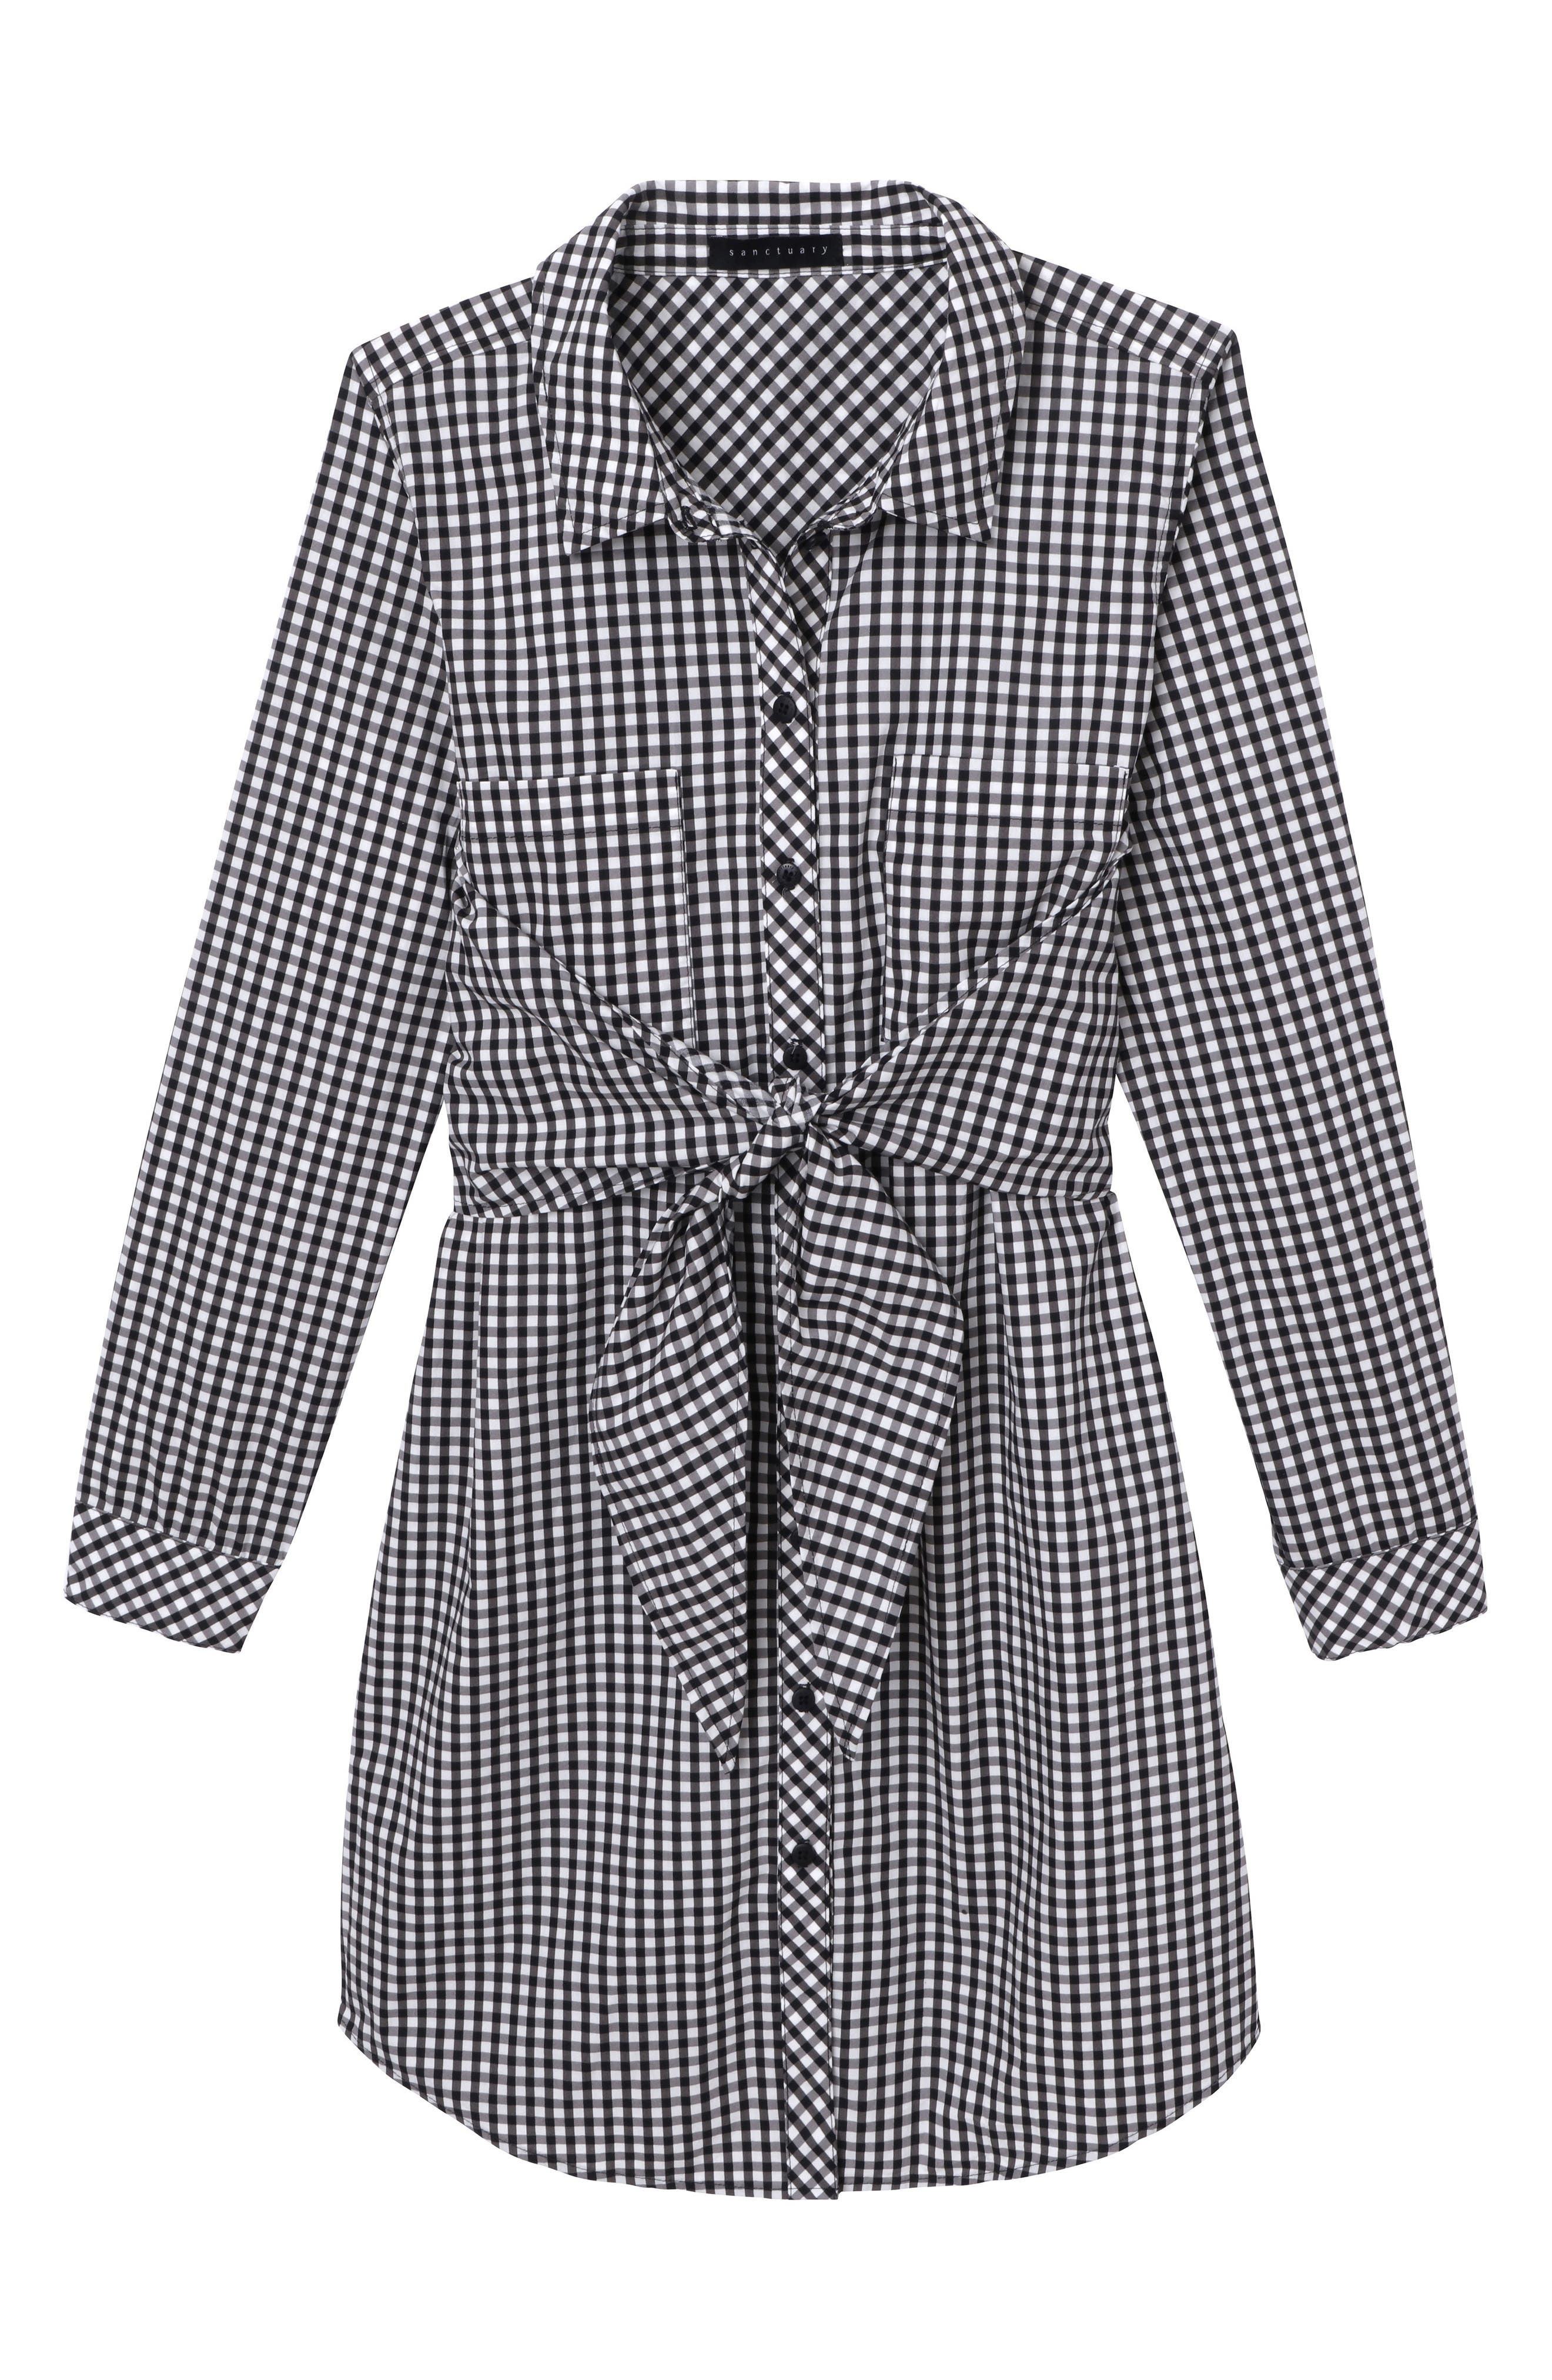 Tie Front Gingham Shirtdress,                             Alternate thumbnail 7, color,                             011